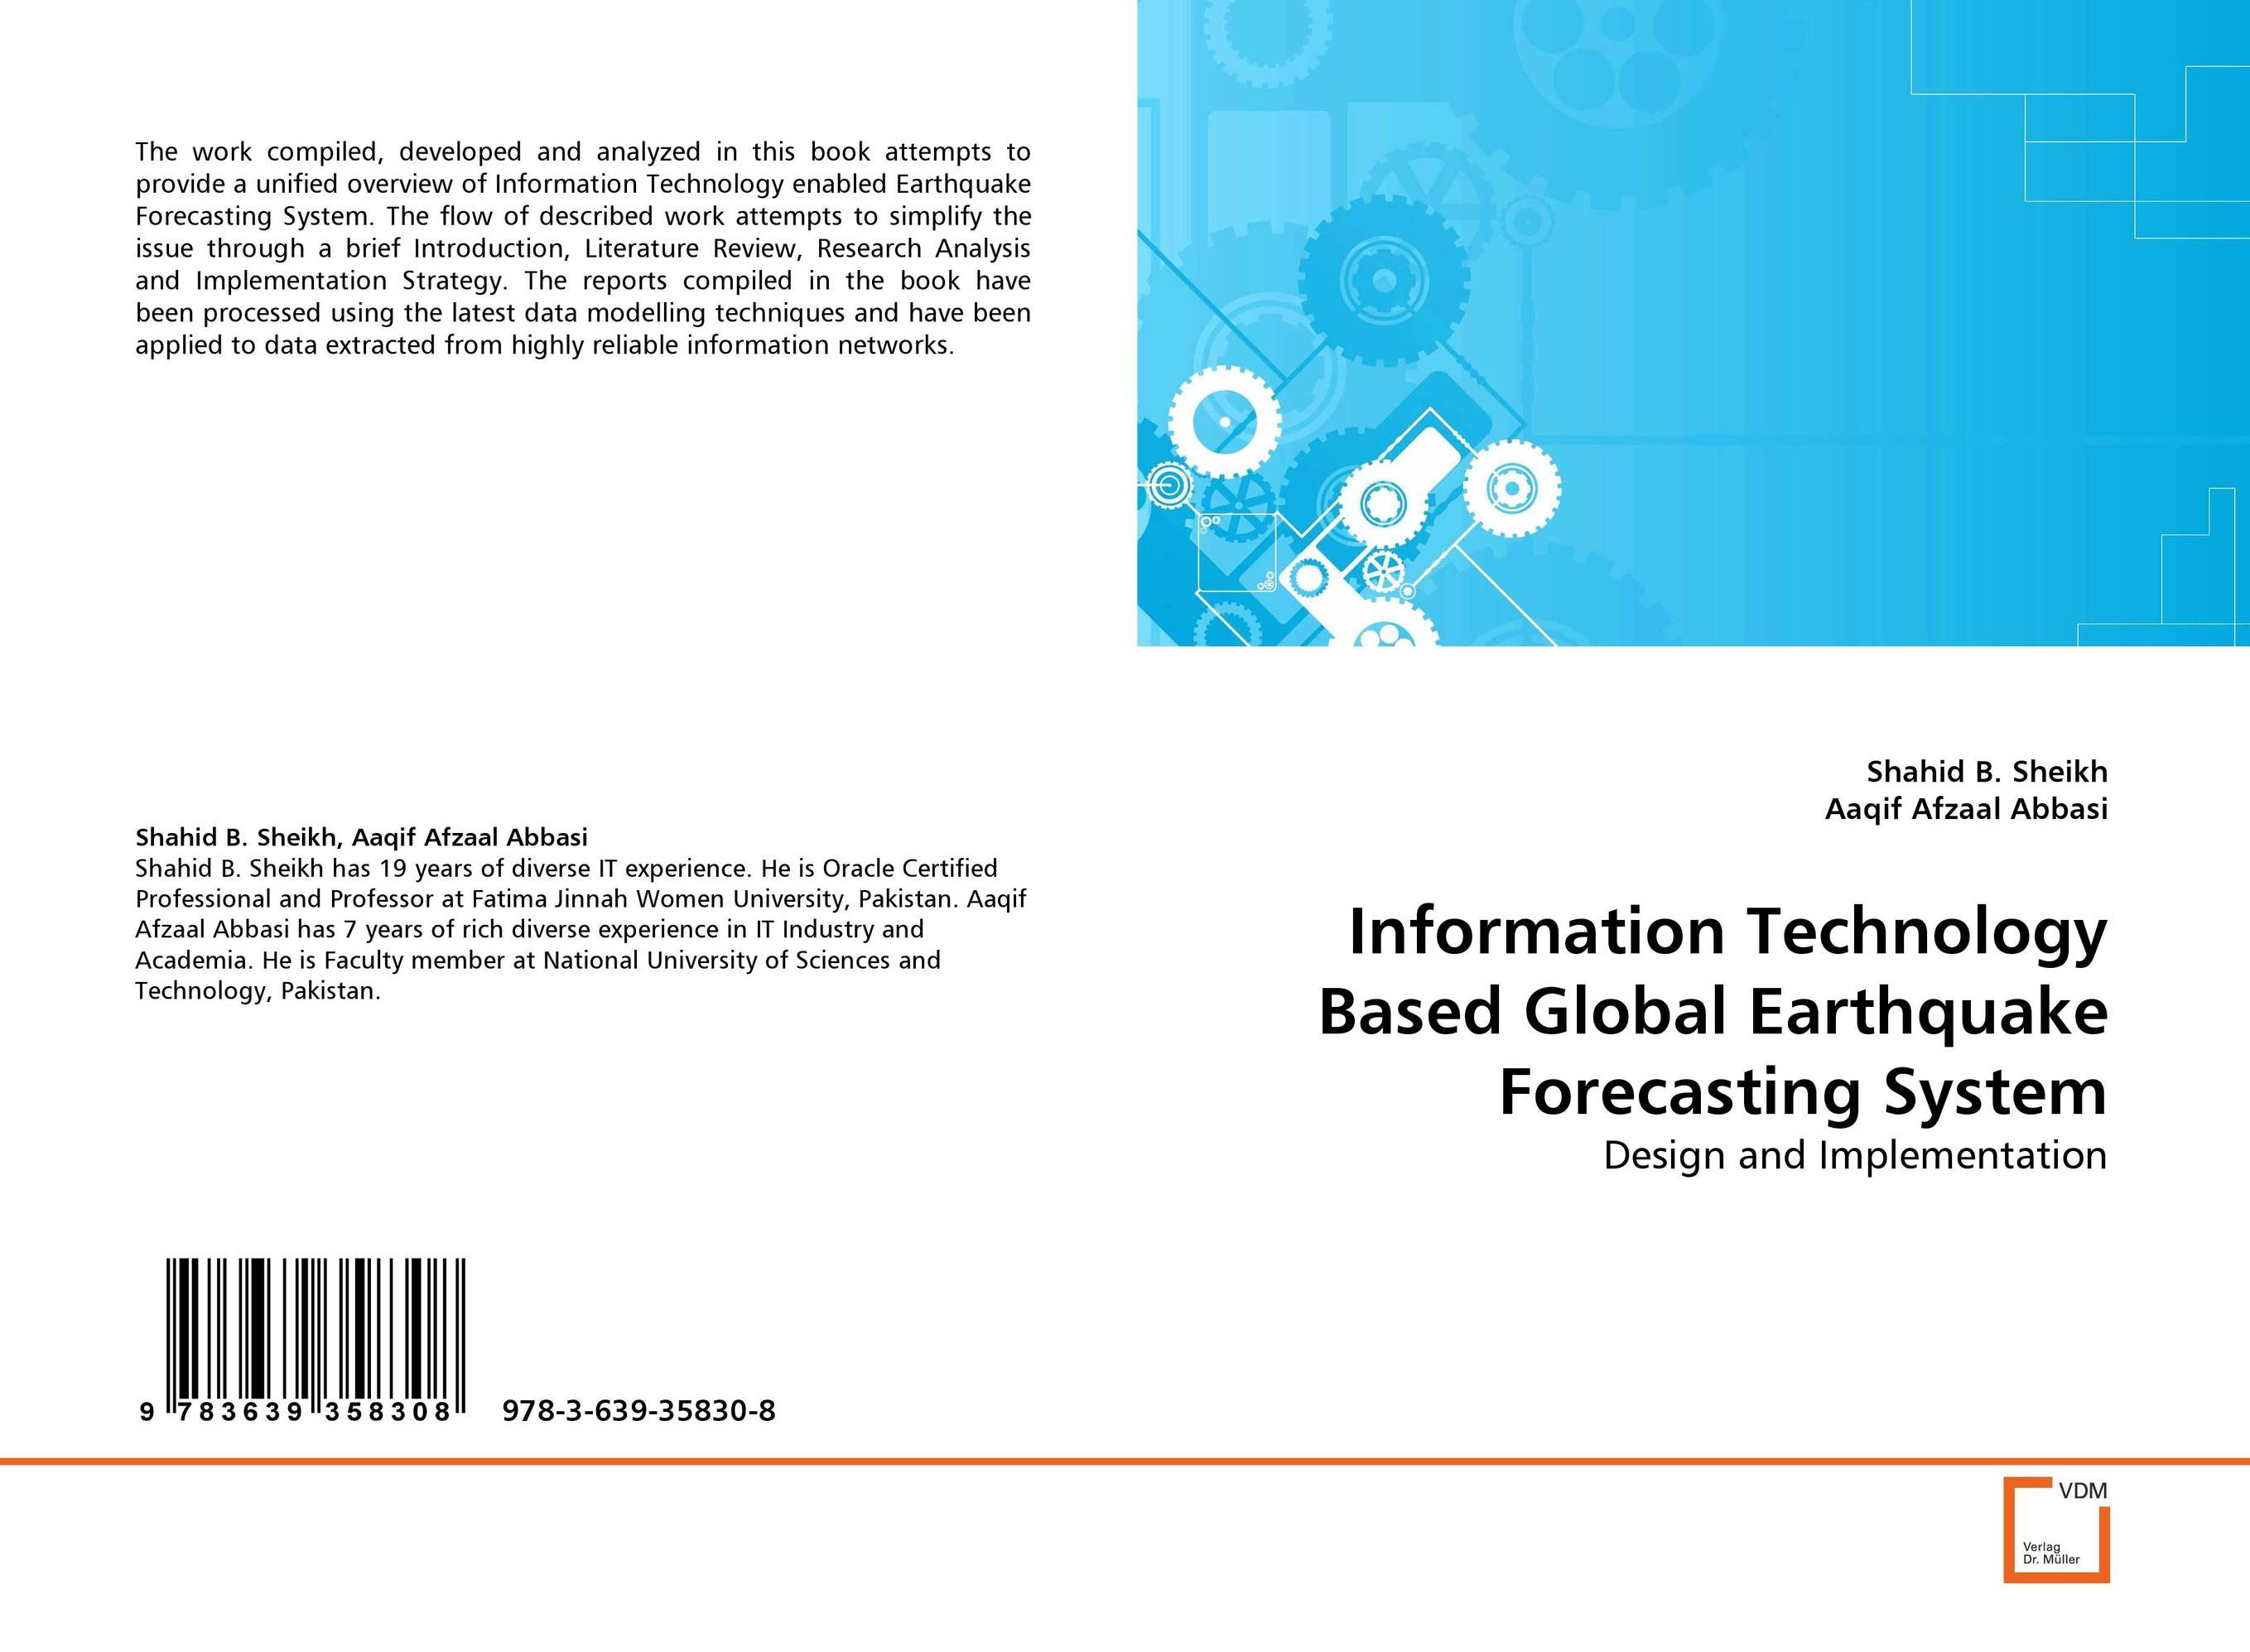 Information Technology Based Global Earthquake Forecasting System timothy jury cash flow analysis and forecasting the definitive guide to understanding and using published cash flow data